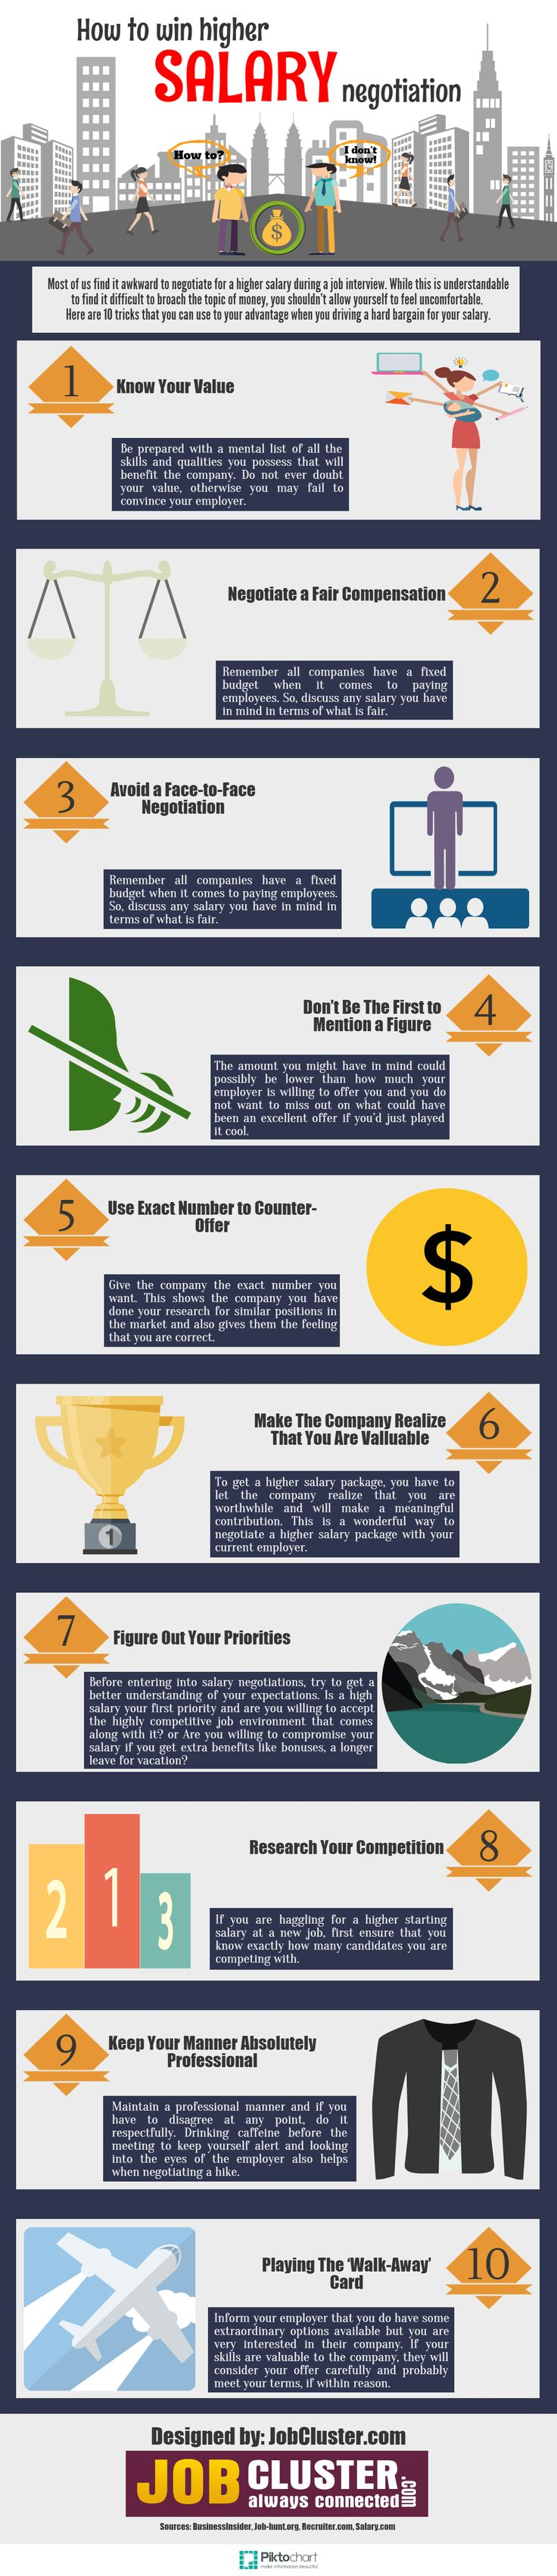 Here Are 10 Psychological Tricks U0026 Infographic To Win A Higher Salary  Negotiation During Job Interview And When Youu0027re Already Doing A Job.